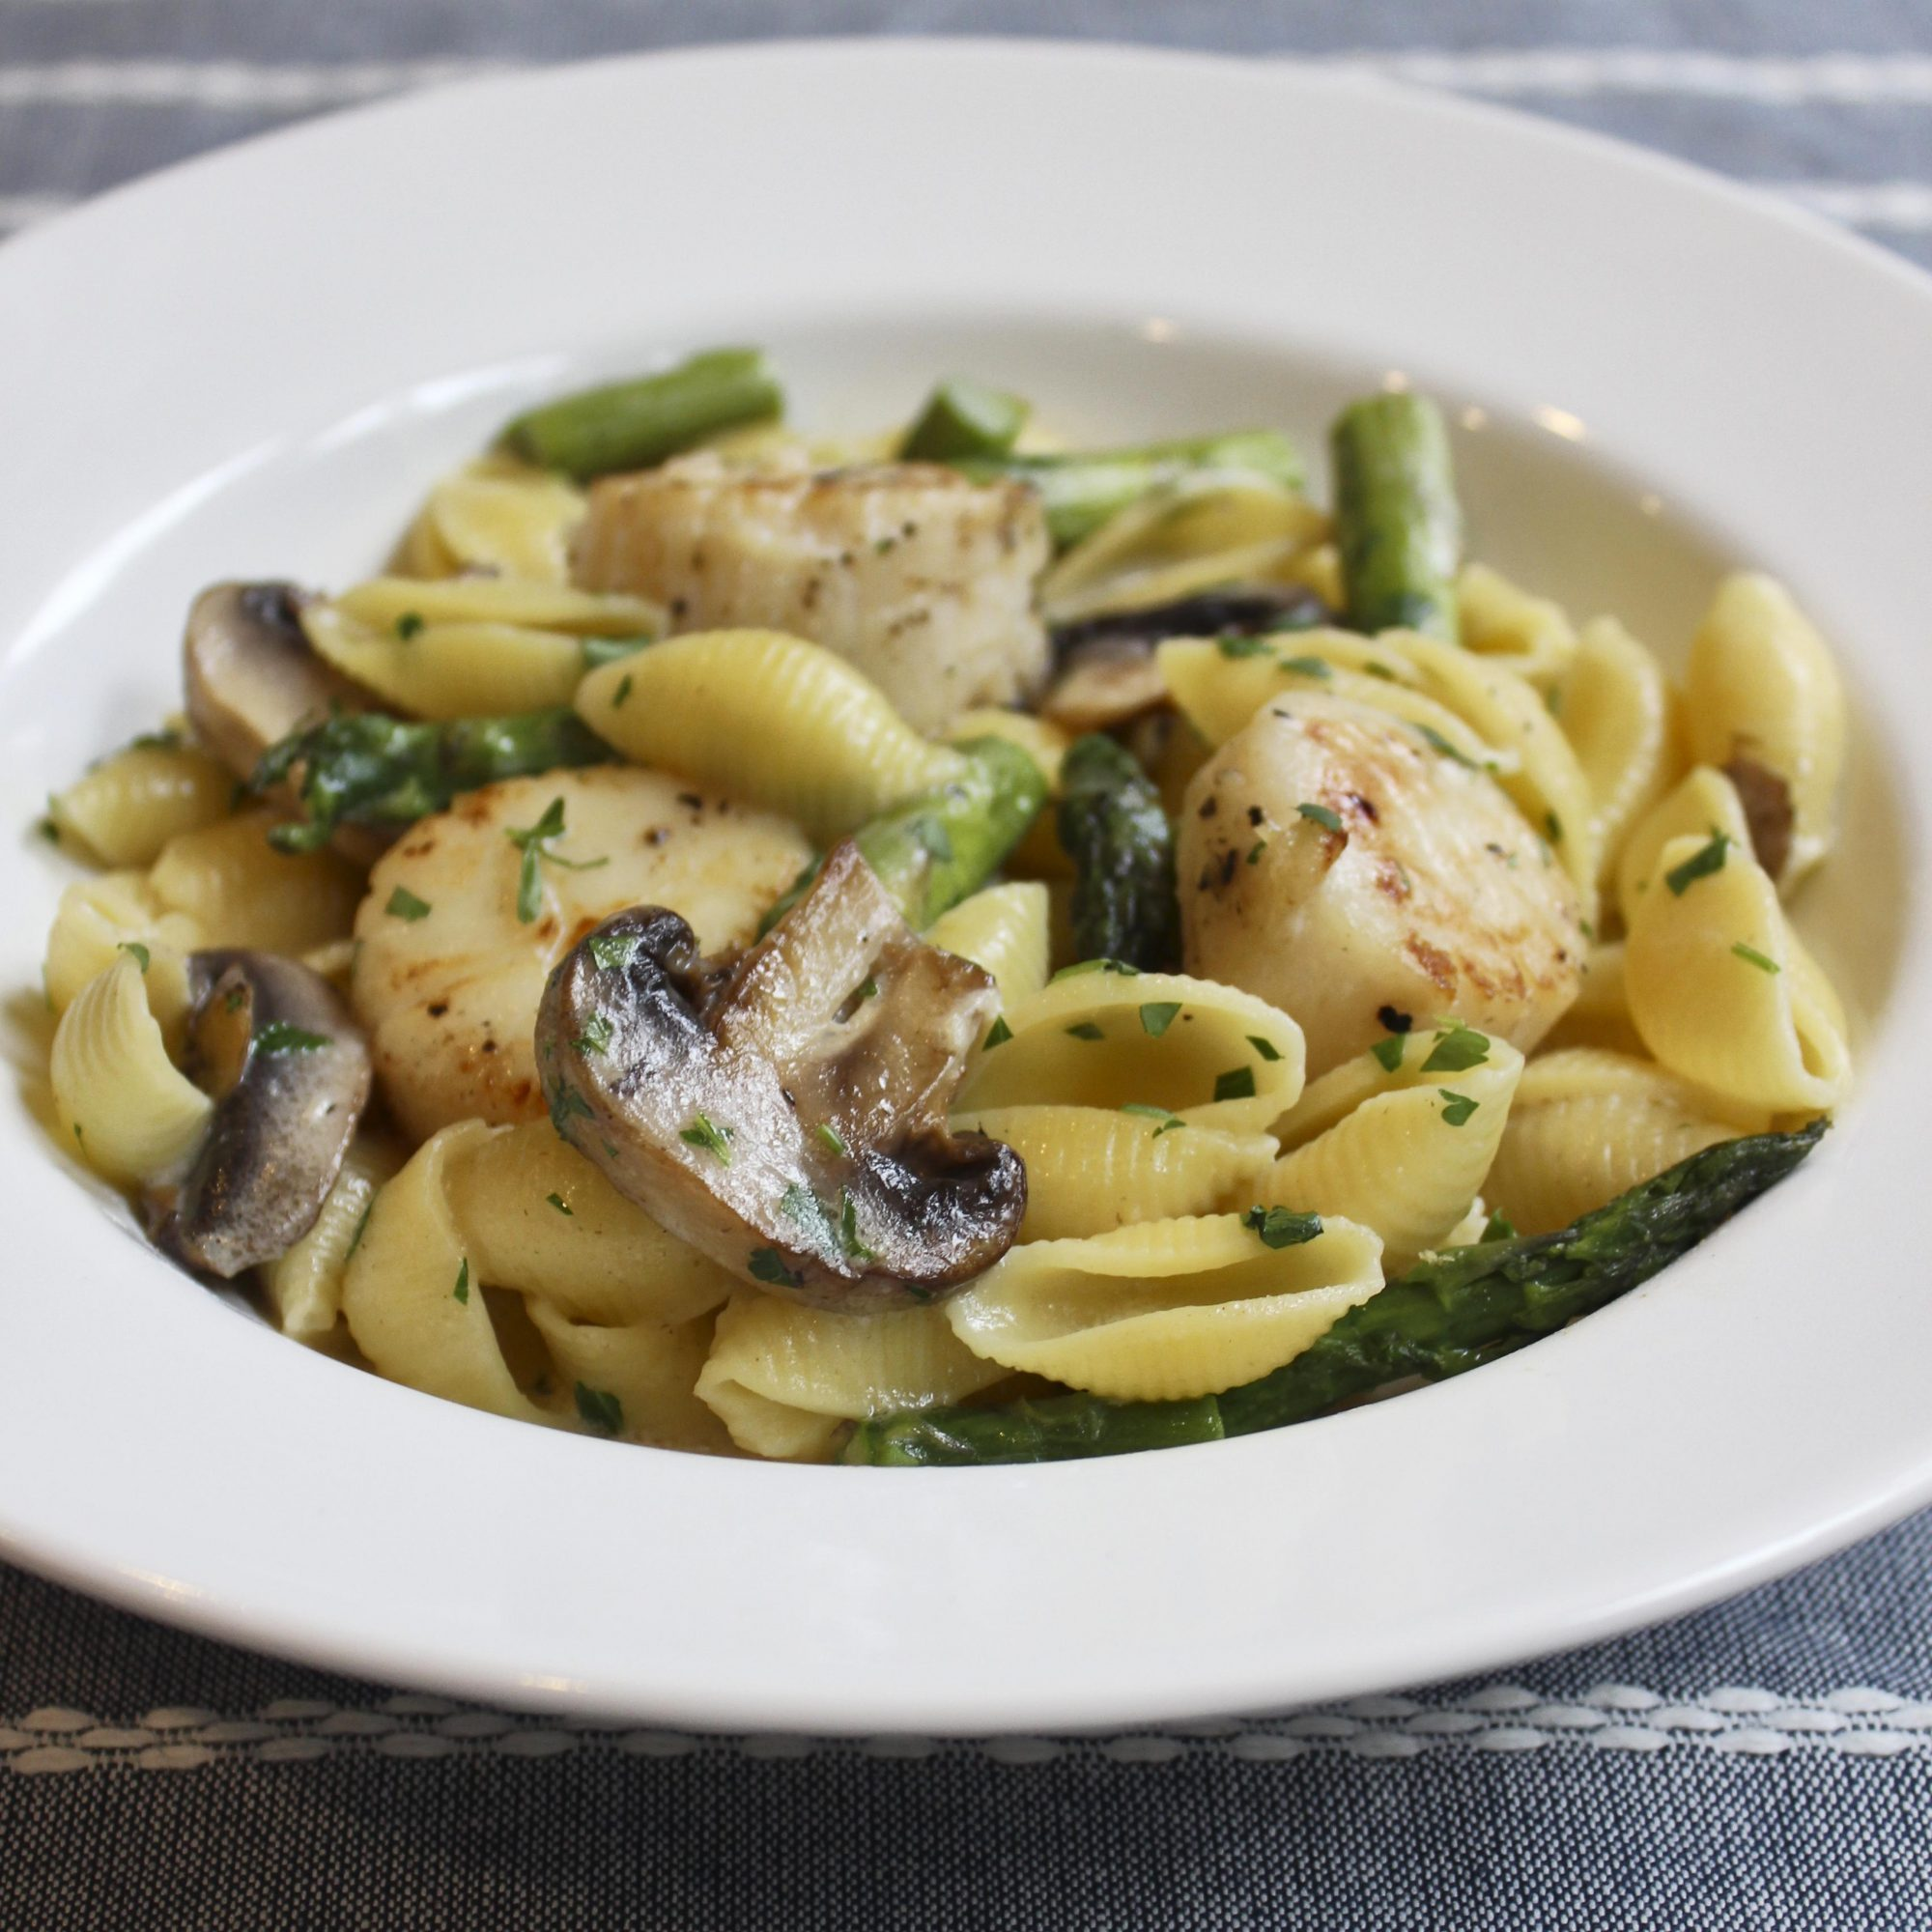 Wide rimmed white pasta bowl filled with shell pasta tossed with scallops, mushrooms, asparagus and topped with fresh herbs.